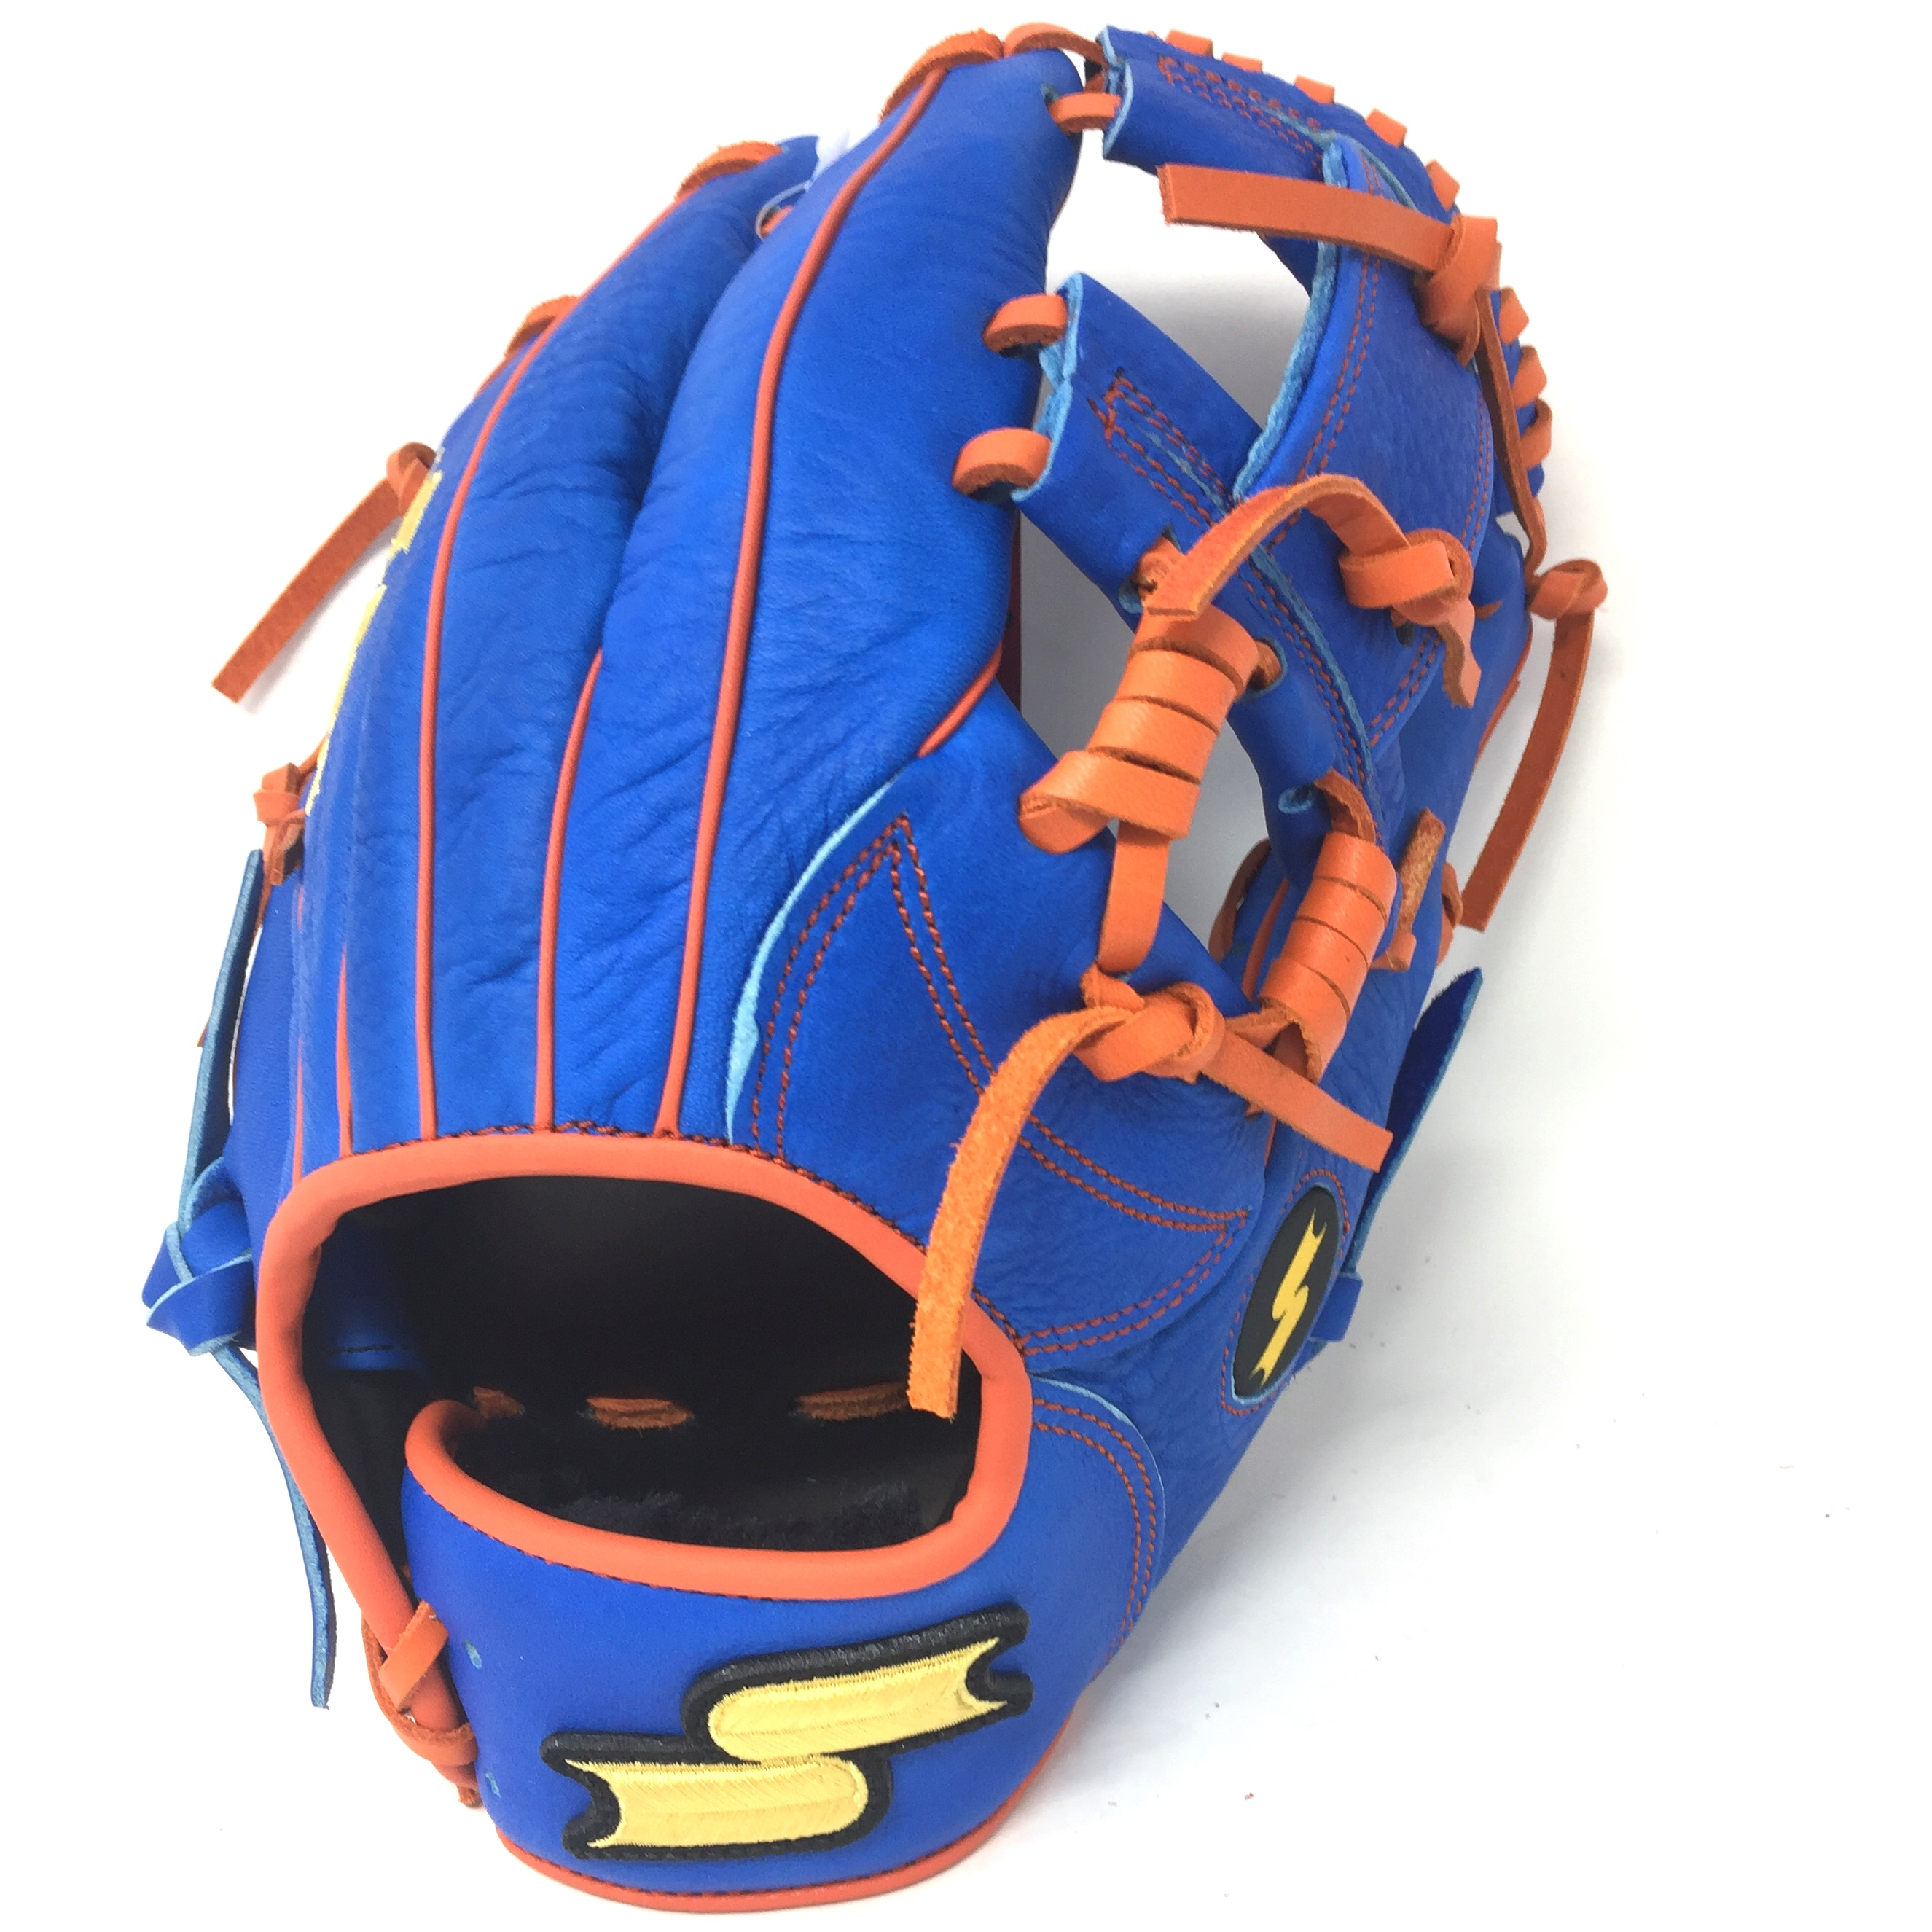 ssk-tensai-series-11-5-cano-baseball-glove-right-hand-throw S20TCANO-RightHandThrow SSK 083351453220 <p>11.50 Inch Baseball Glove Colorway Blue | Orange Conventional Open Back